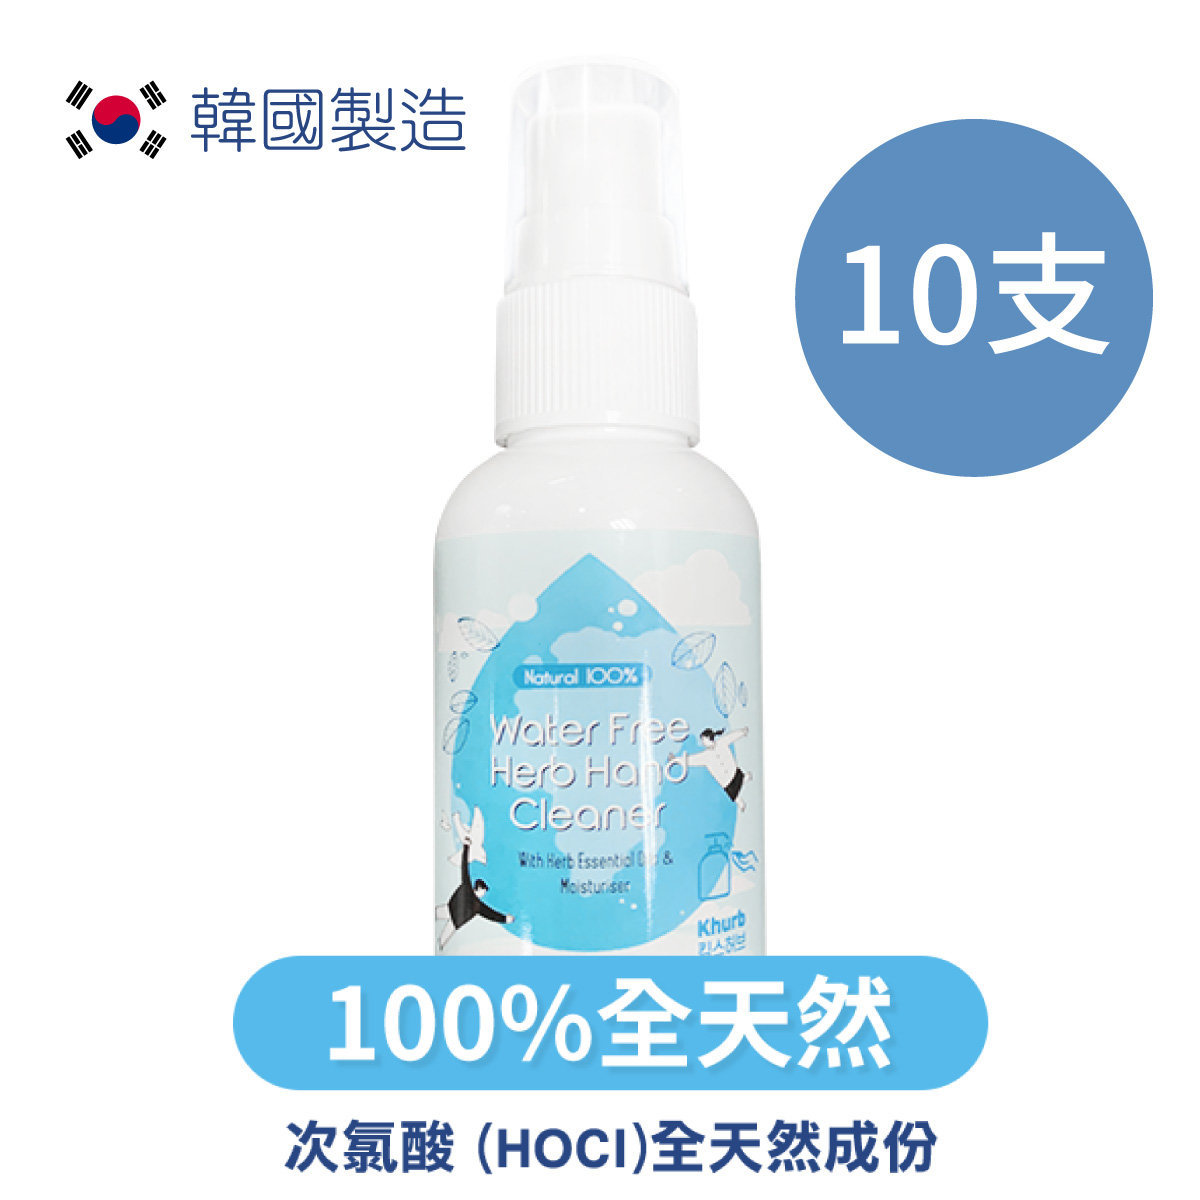 Natural 100% Water Free Herb Hand Cleaner 50ml x 10pcs